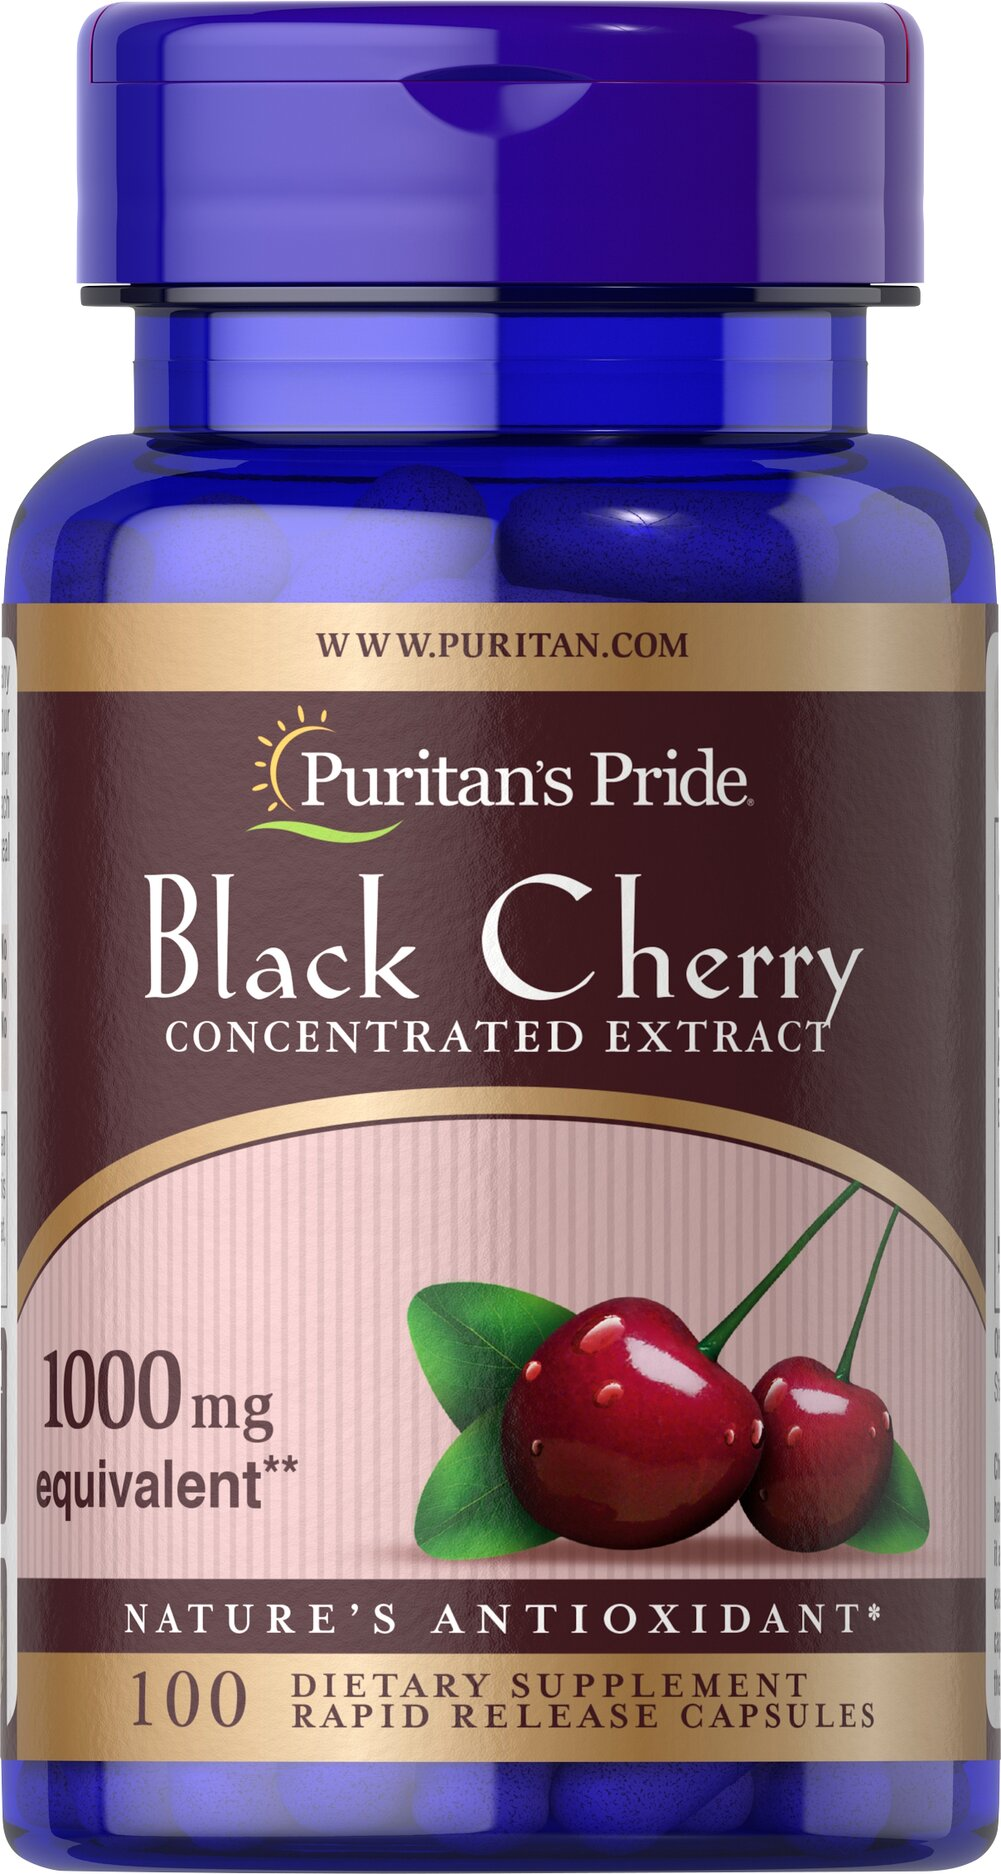 Black Cherry 1000 mg <p>Cherries are known for their natural content of antioxidants and other beneficial components. Black Cherry's beneficial compounds help to give it a rich, dark color that is bursting with nutritional goodness. Now you can easily obtain the benefits of Black Cherry in our convenient Black Cherry capsules. Each serving contains a 4:1 extract of Black Cherry to help retain the most important constituents.</p> 100 Capsules 1000 mg $21.99